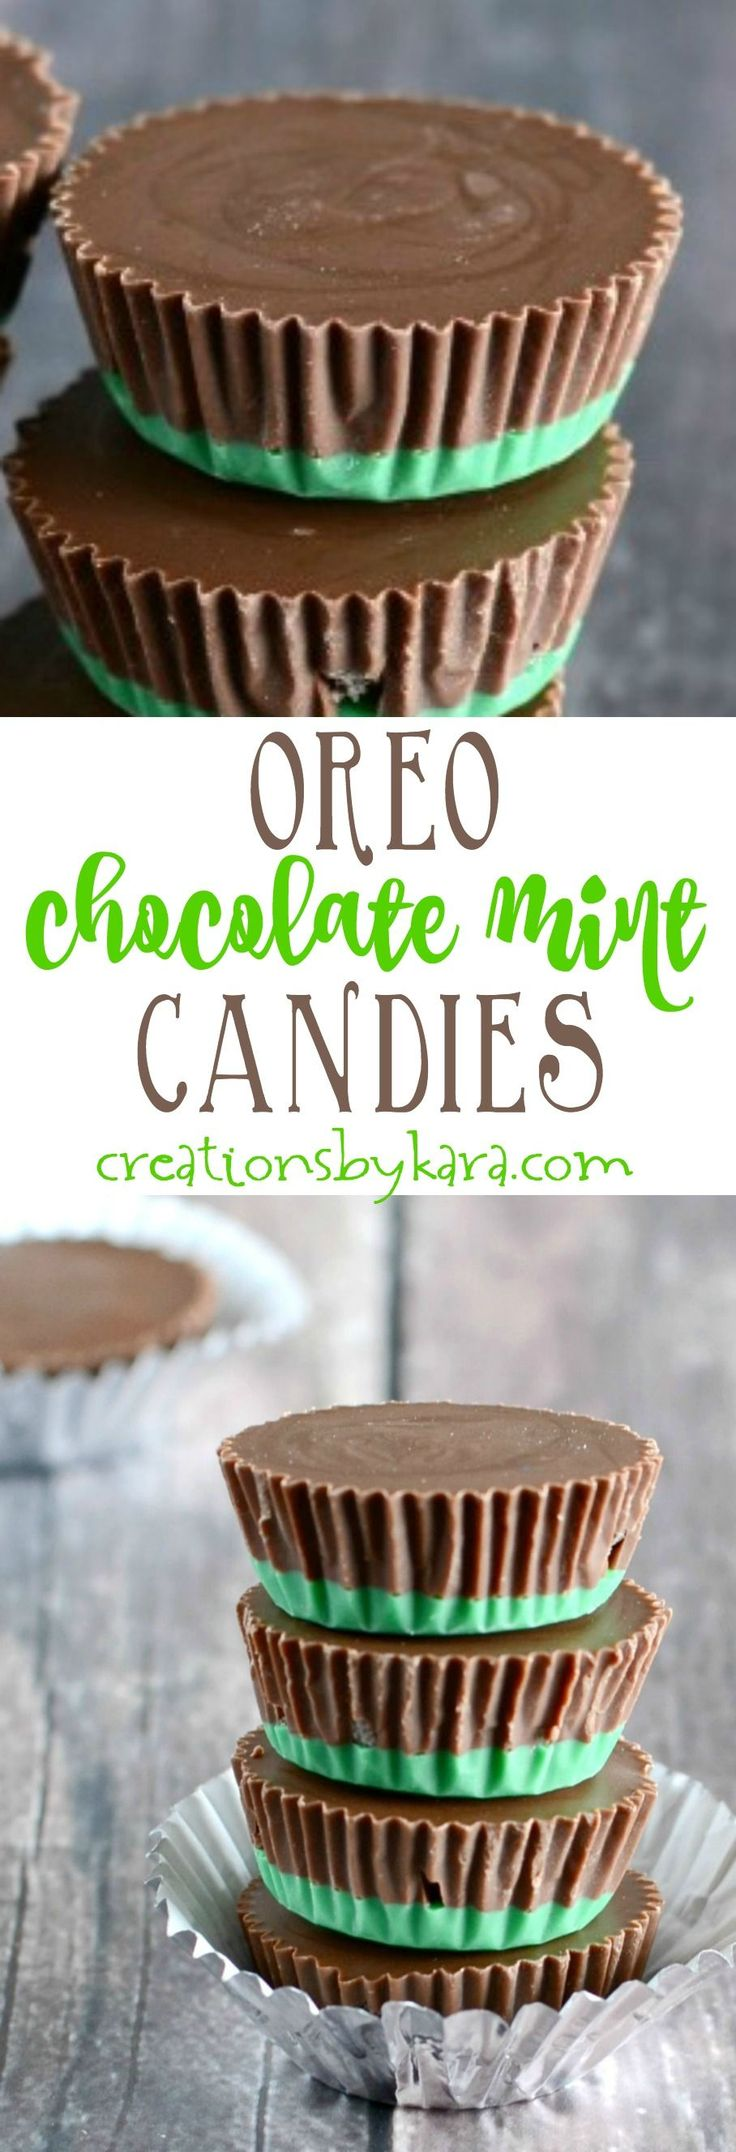 With just four ingredients, these Chocolate Mint Candies are a cinch to whip up. A perfect candy recipe for Christmas gift giving!